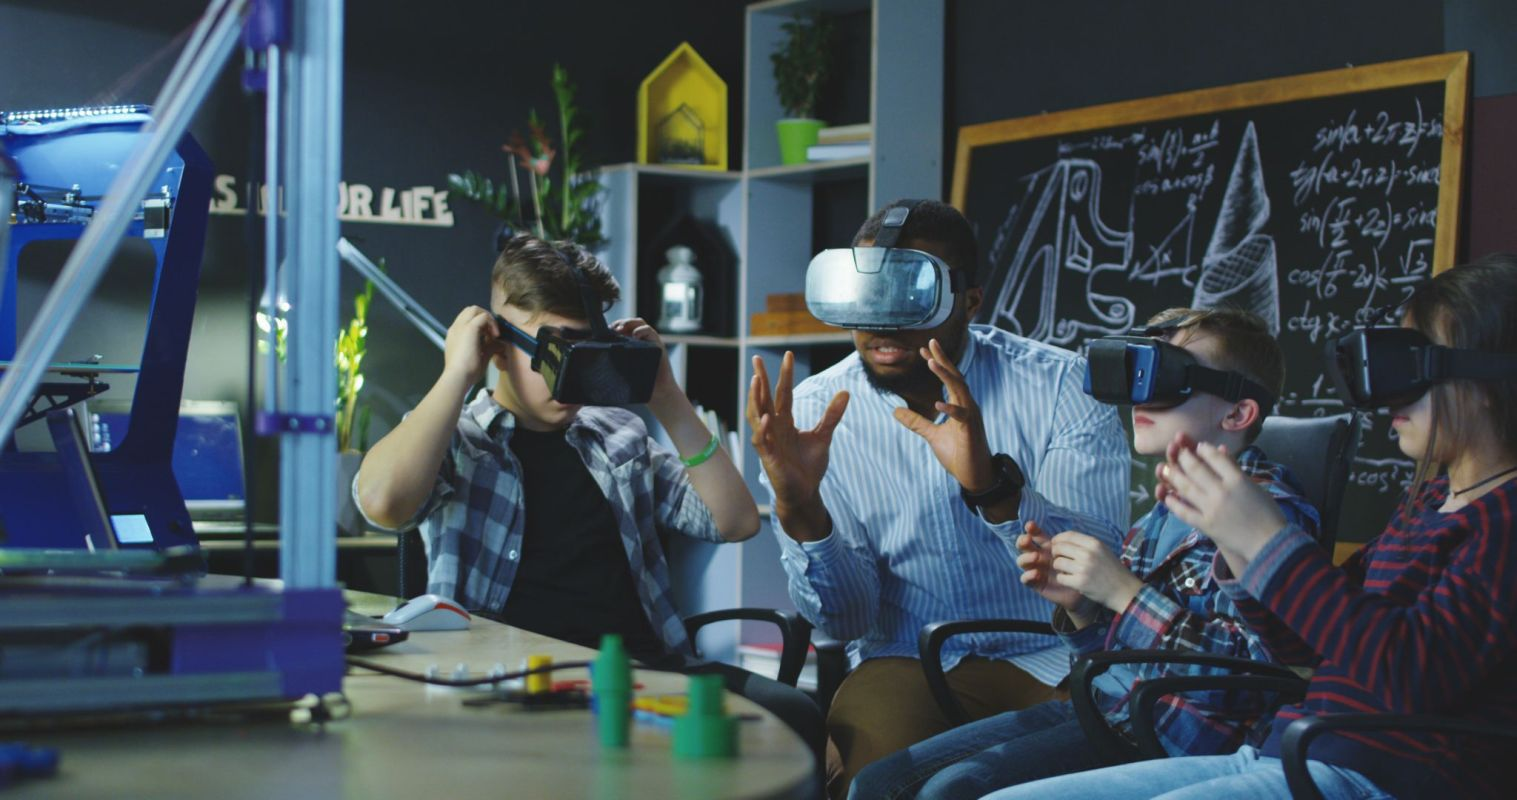 students' knowledge level was enhanced by 37% after using VR, according to research analysis.